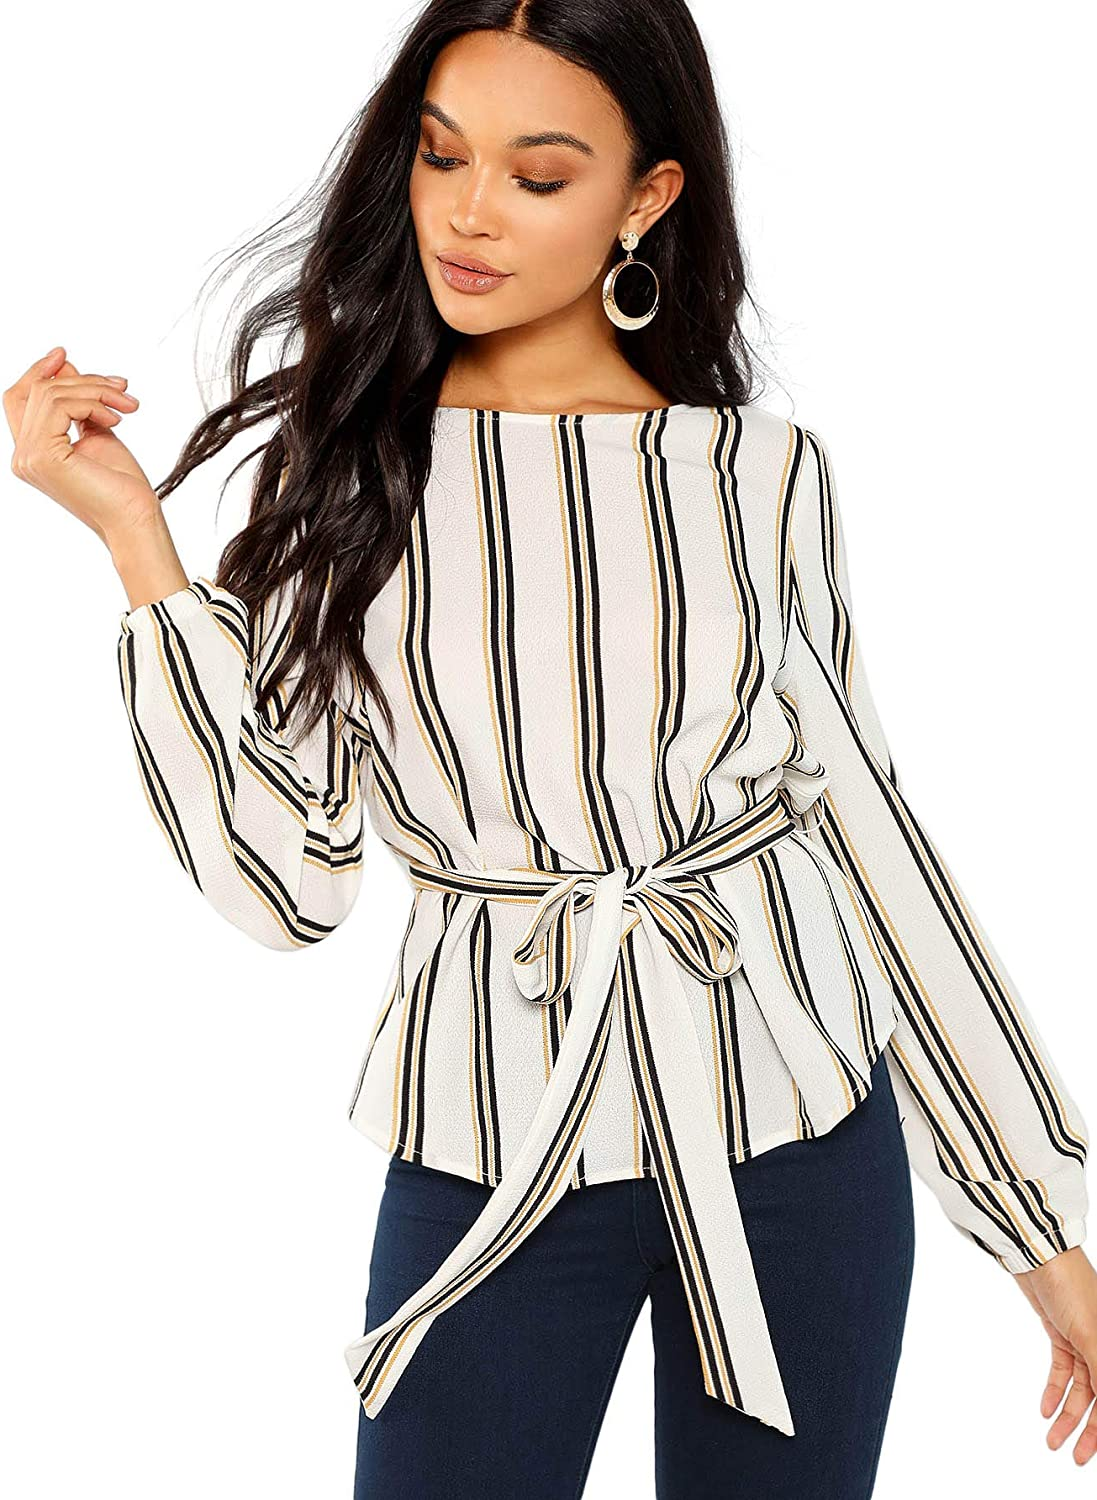 ROMWE Women's Self Belted Striped Print Casual Blouse Top Shirt